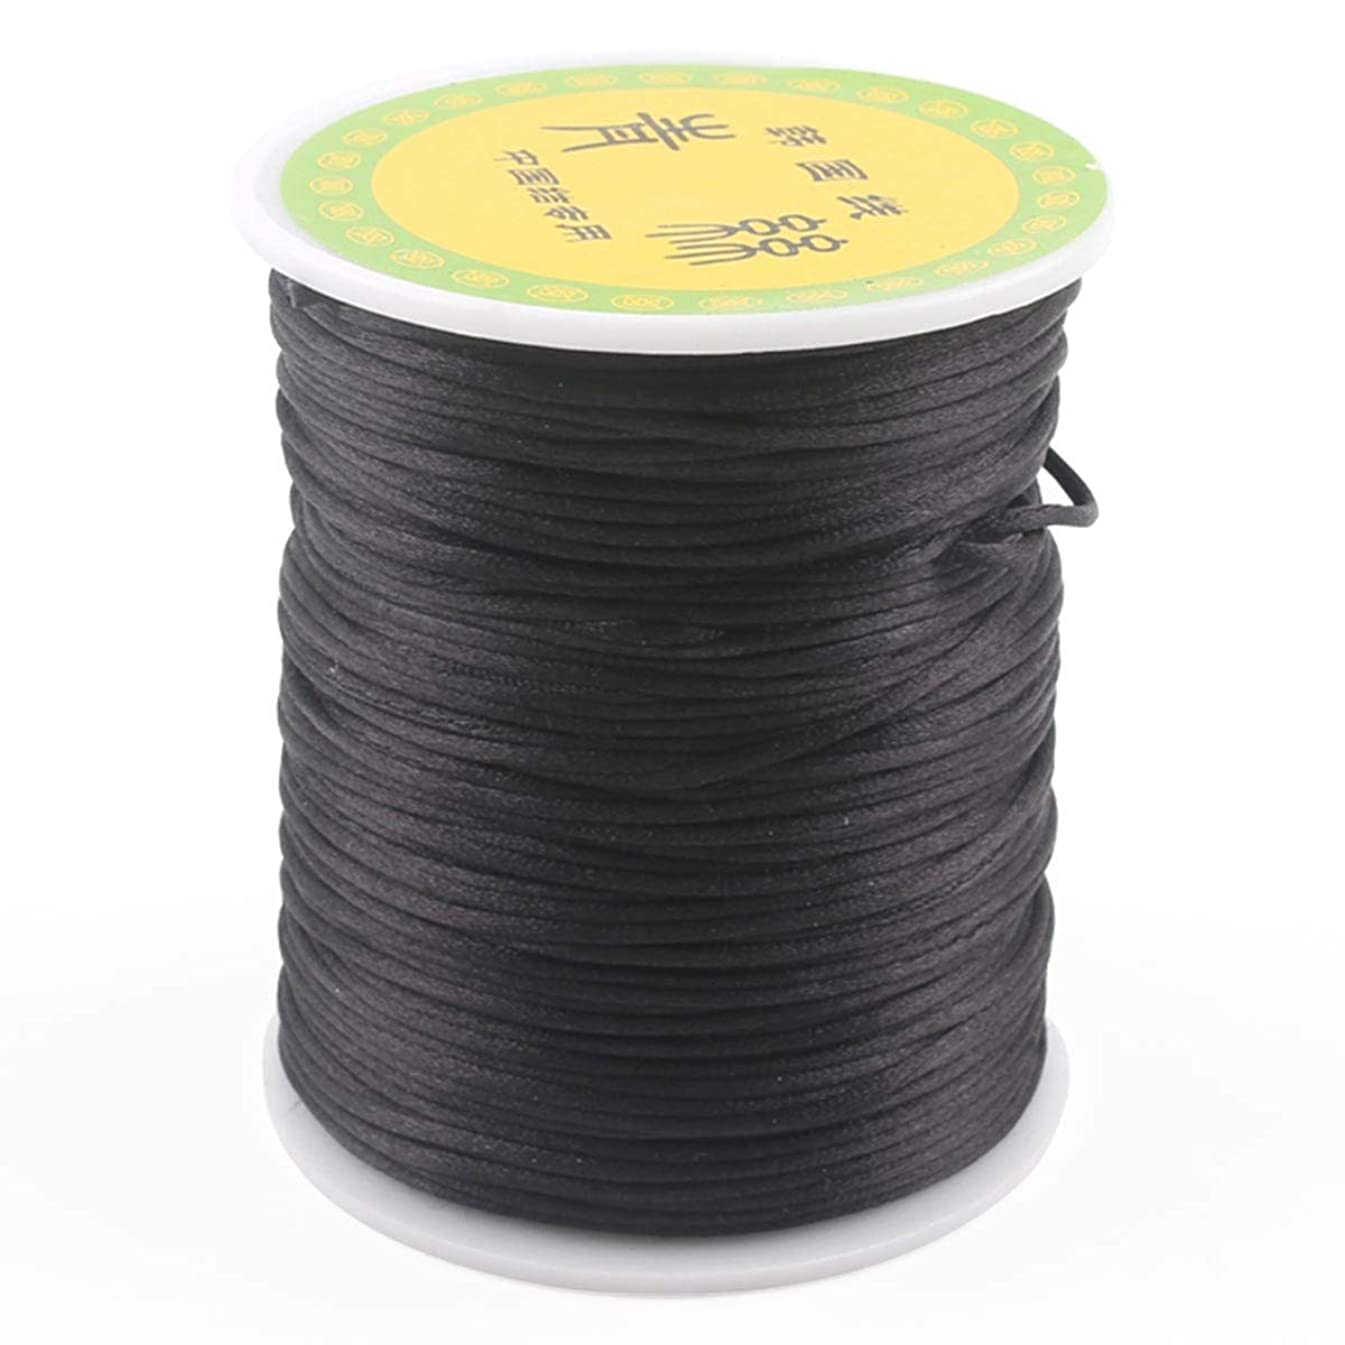 HAO JIE Balck 1mm 75m Satin/Rattail Silk Nylon Cord for Braided Necklace Bracelet Beading Jewelry Making Accessory